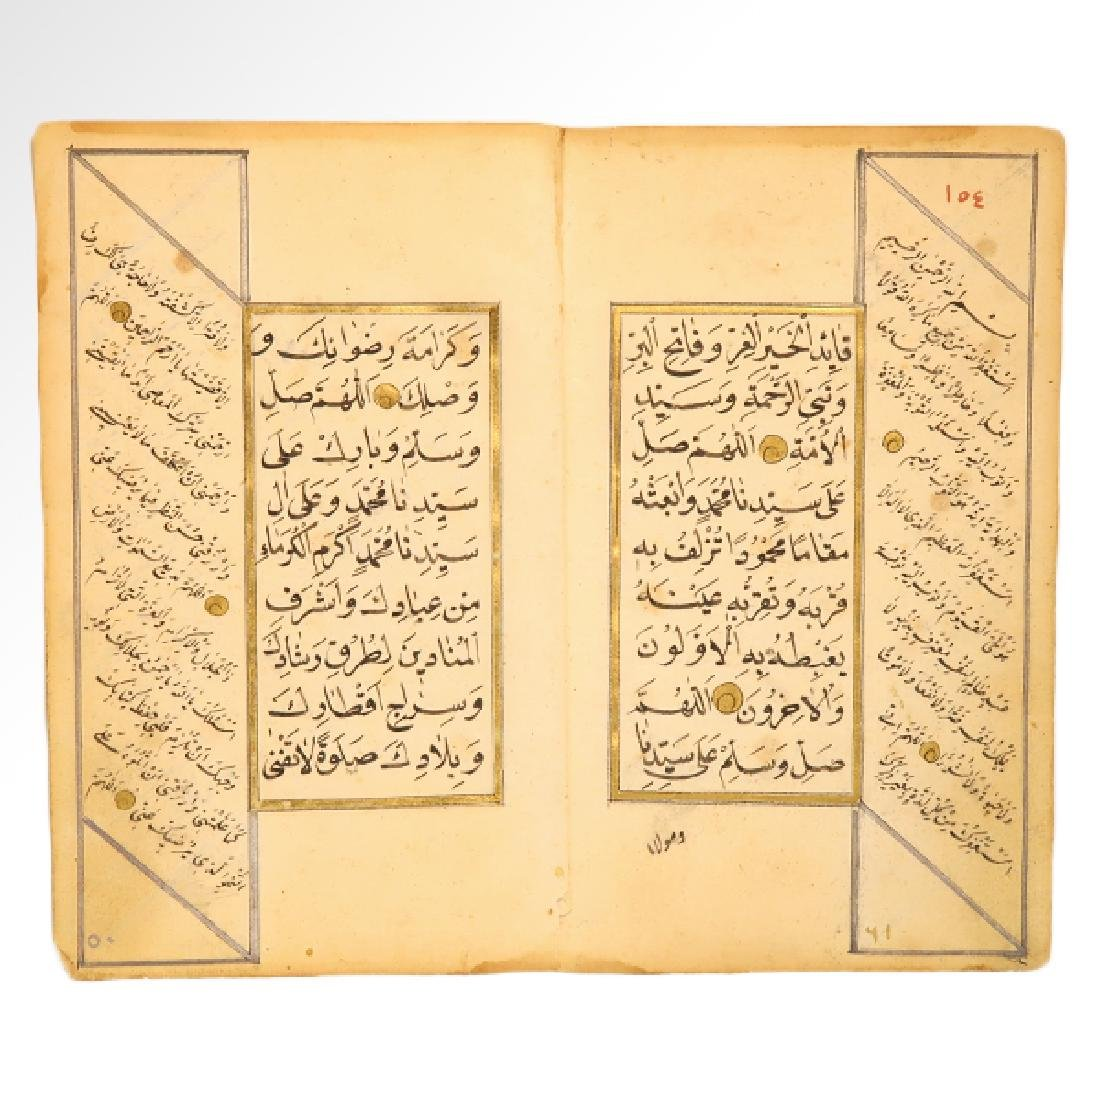 Arabic Illuminated/Gilt Manuscript, Near East, c. 16th